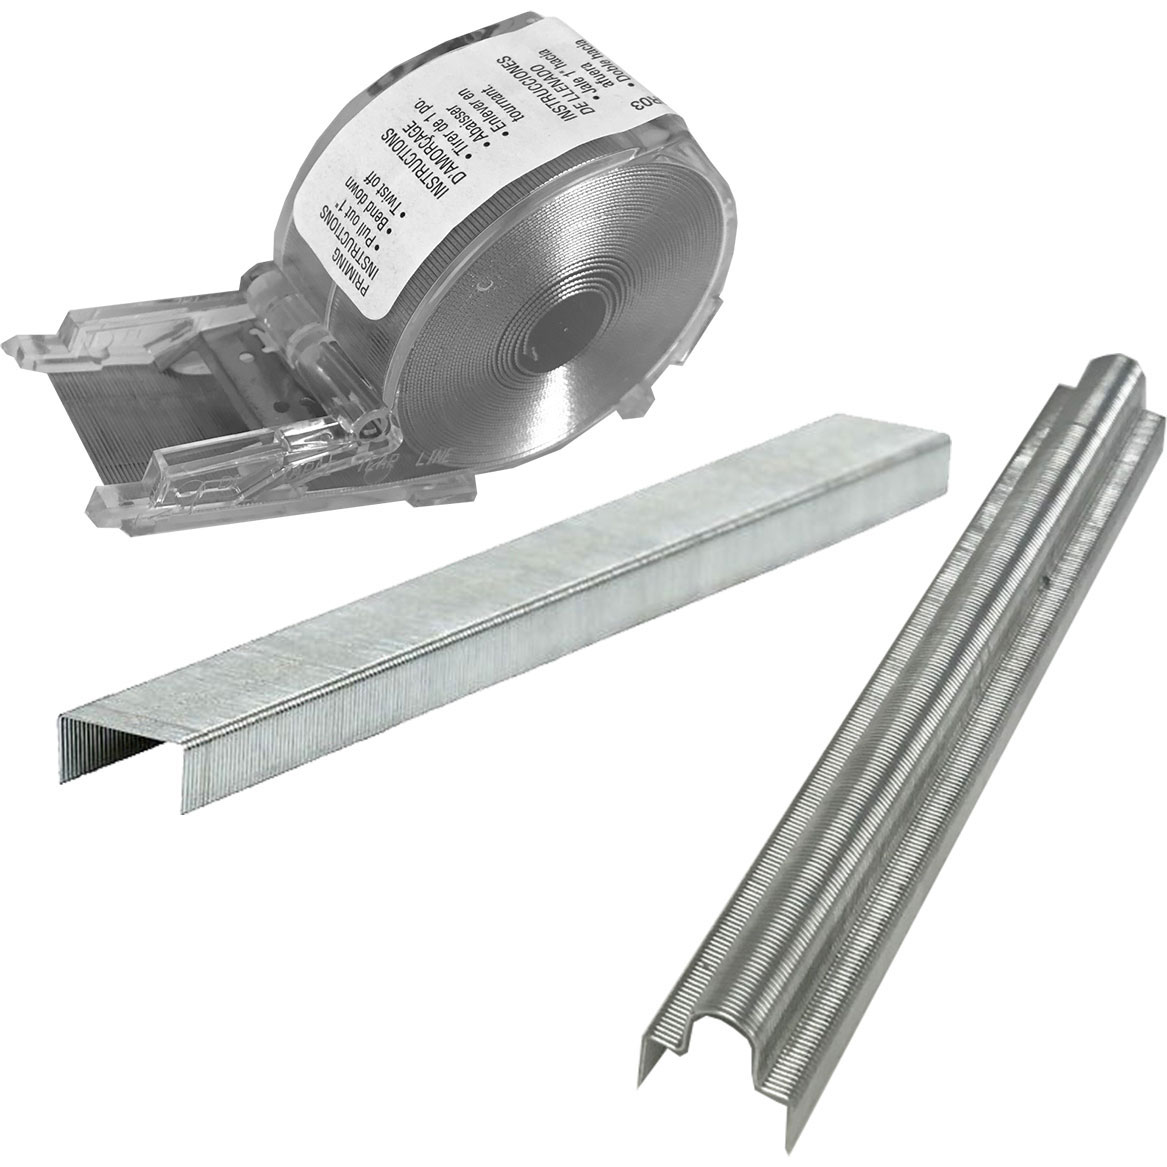 Staple Supplies & Removers